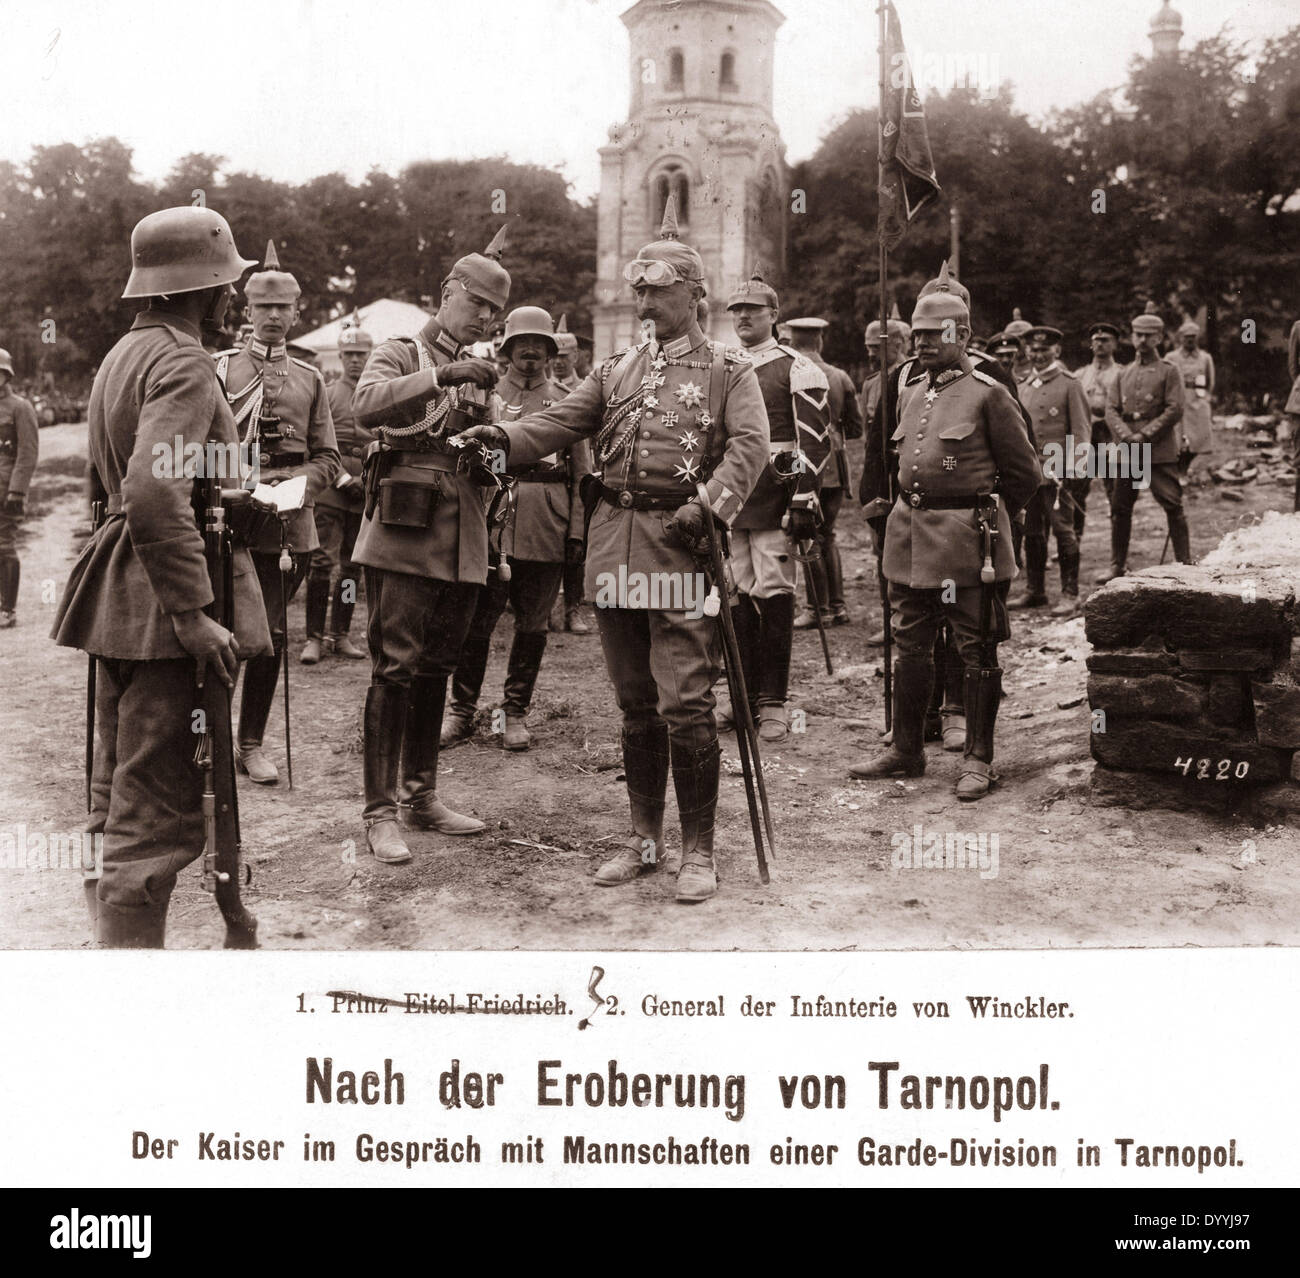 Emperor Wilhelm II. honours soldiers on the Eastern Front, 1917 - Stock Image